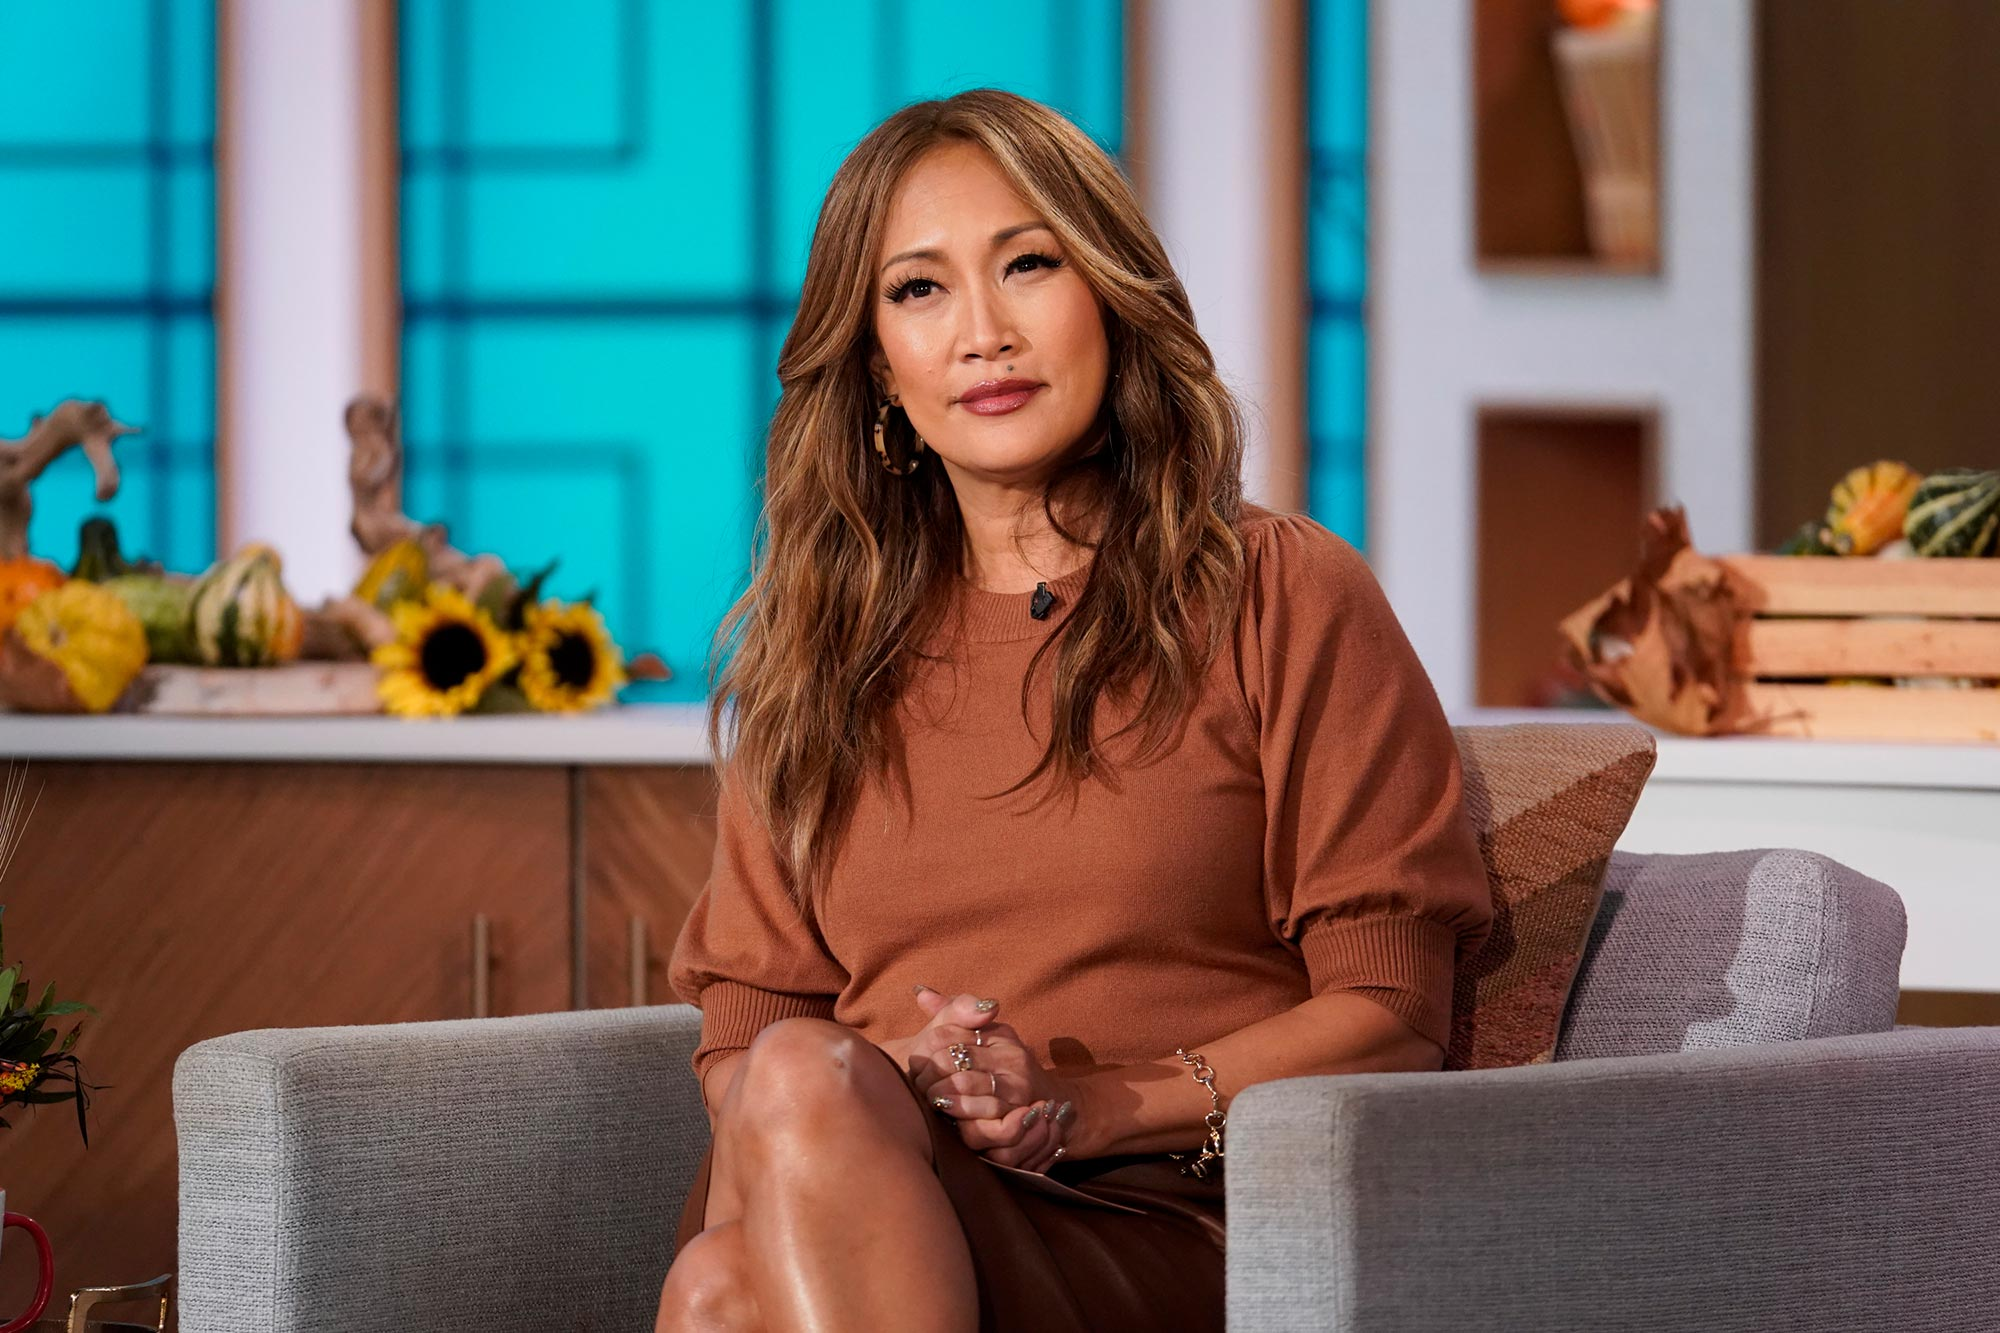 Carrie Ann Inaba announces she's taking a break from The Talk due to health issues